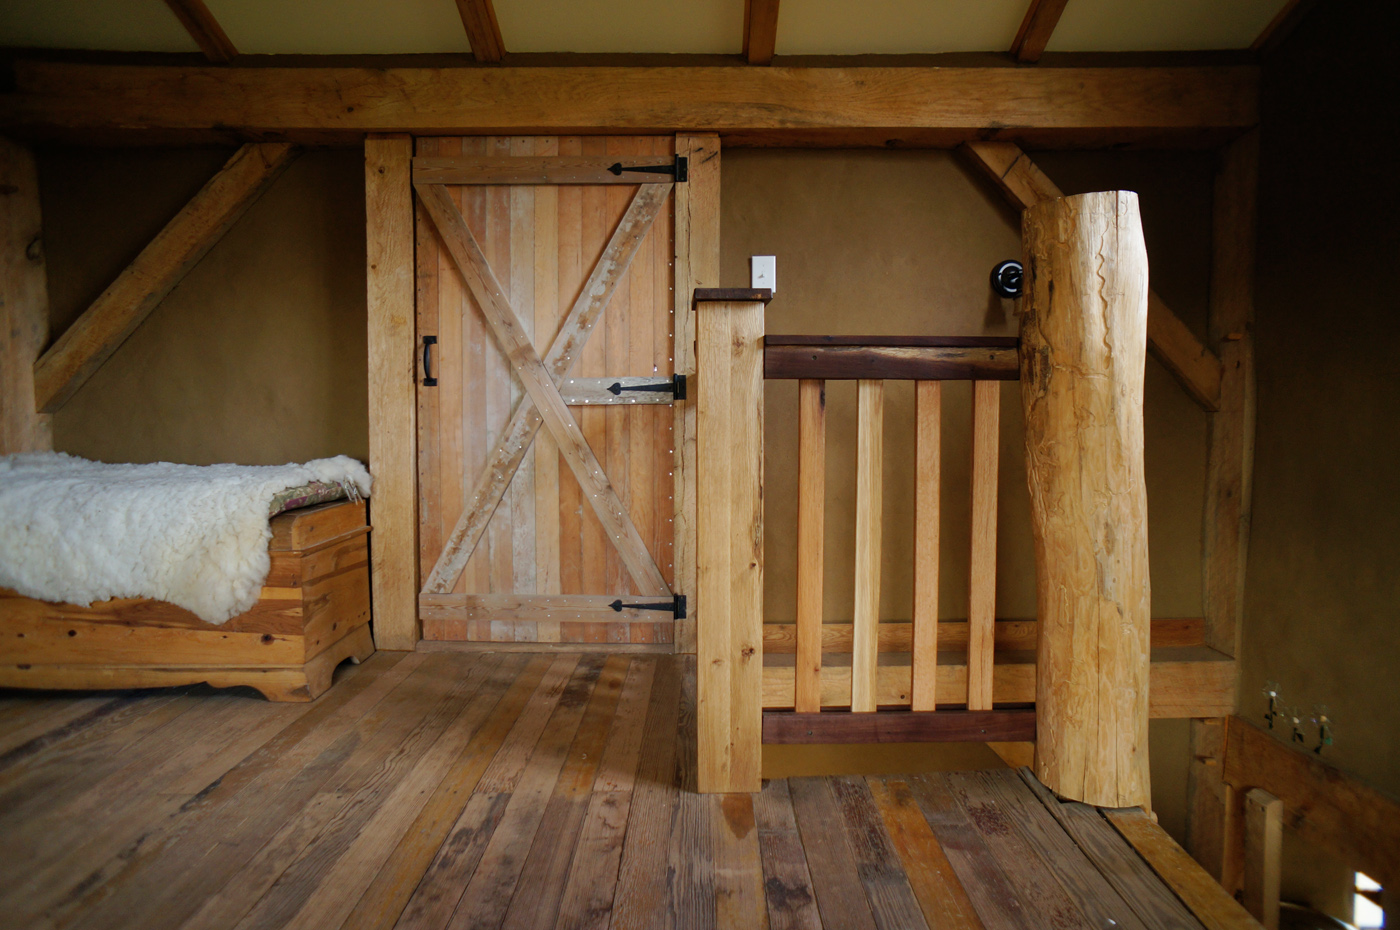 Building a diy wooden interior stair railing the year of mud for Diy timber frame plans